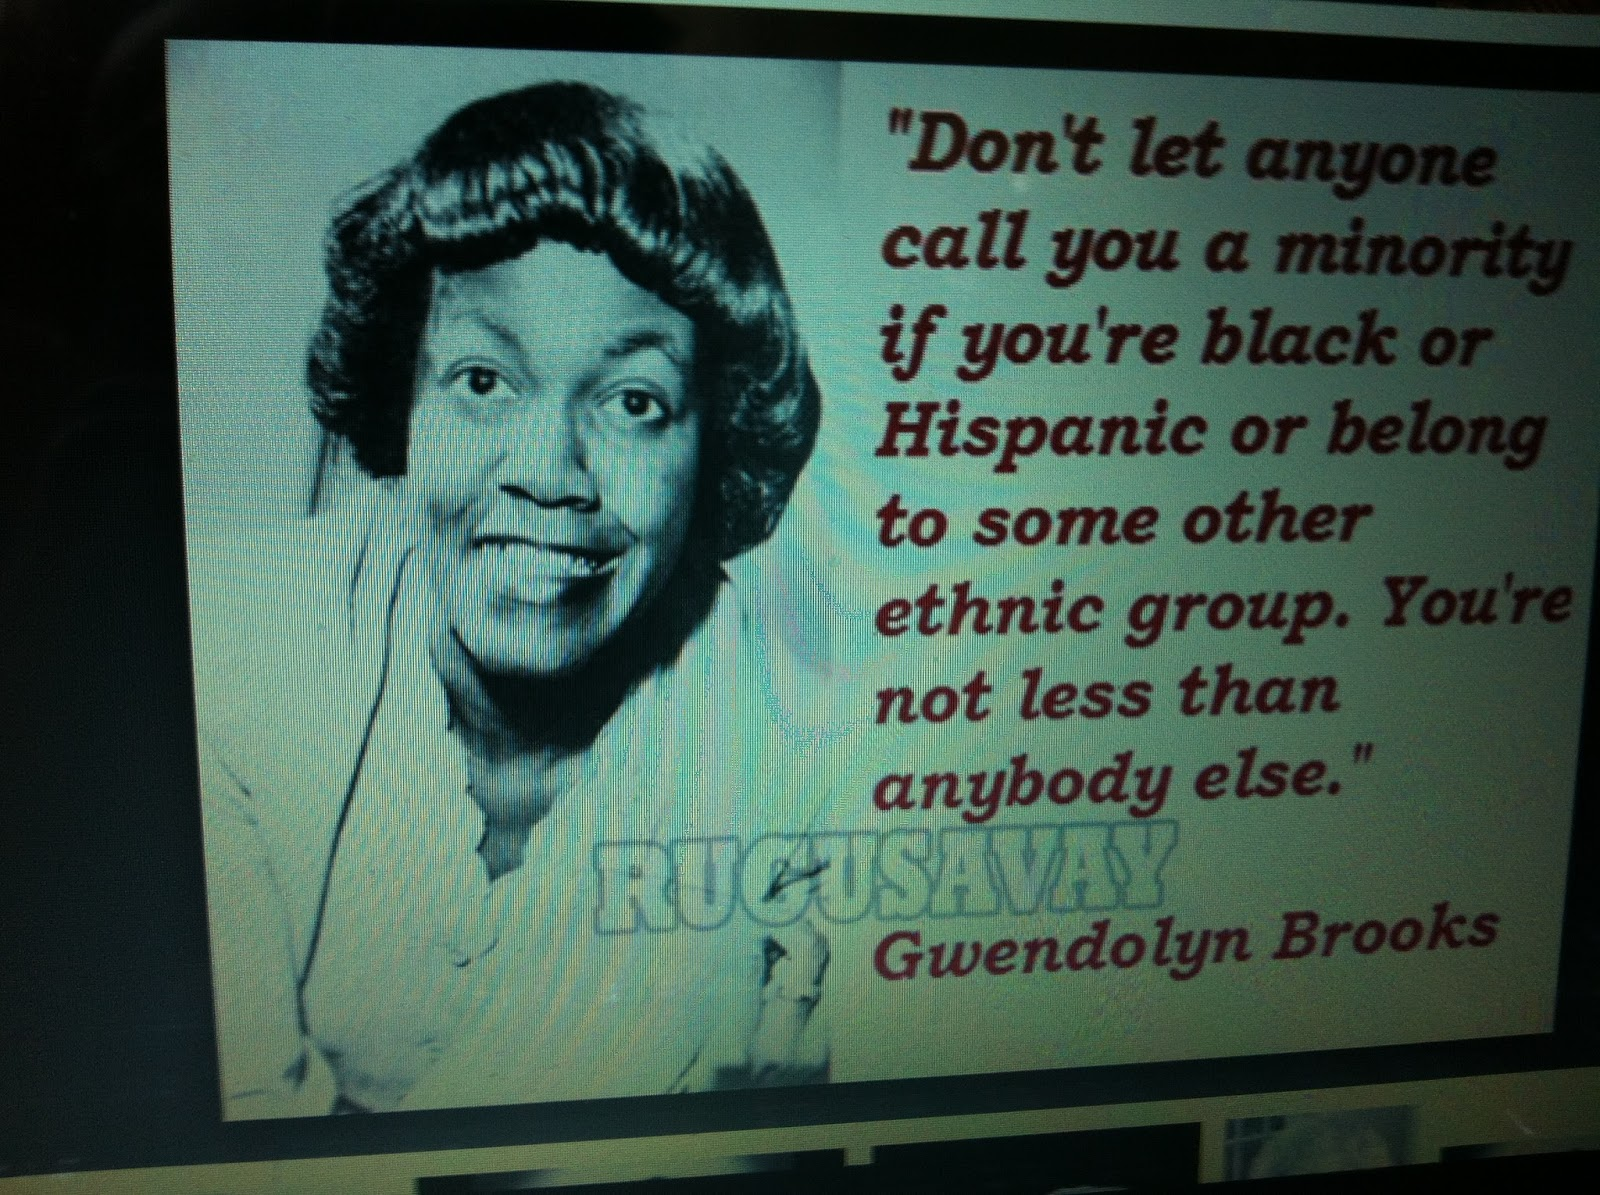 an introduction to the history of african american poetry by gwendolyn brooks The historical and social context of gwendolyn brooks's poetry kathy rugoff from both european and african american literary traditions to write.